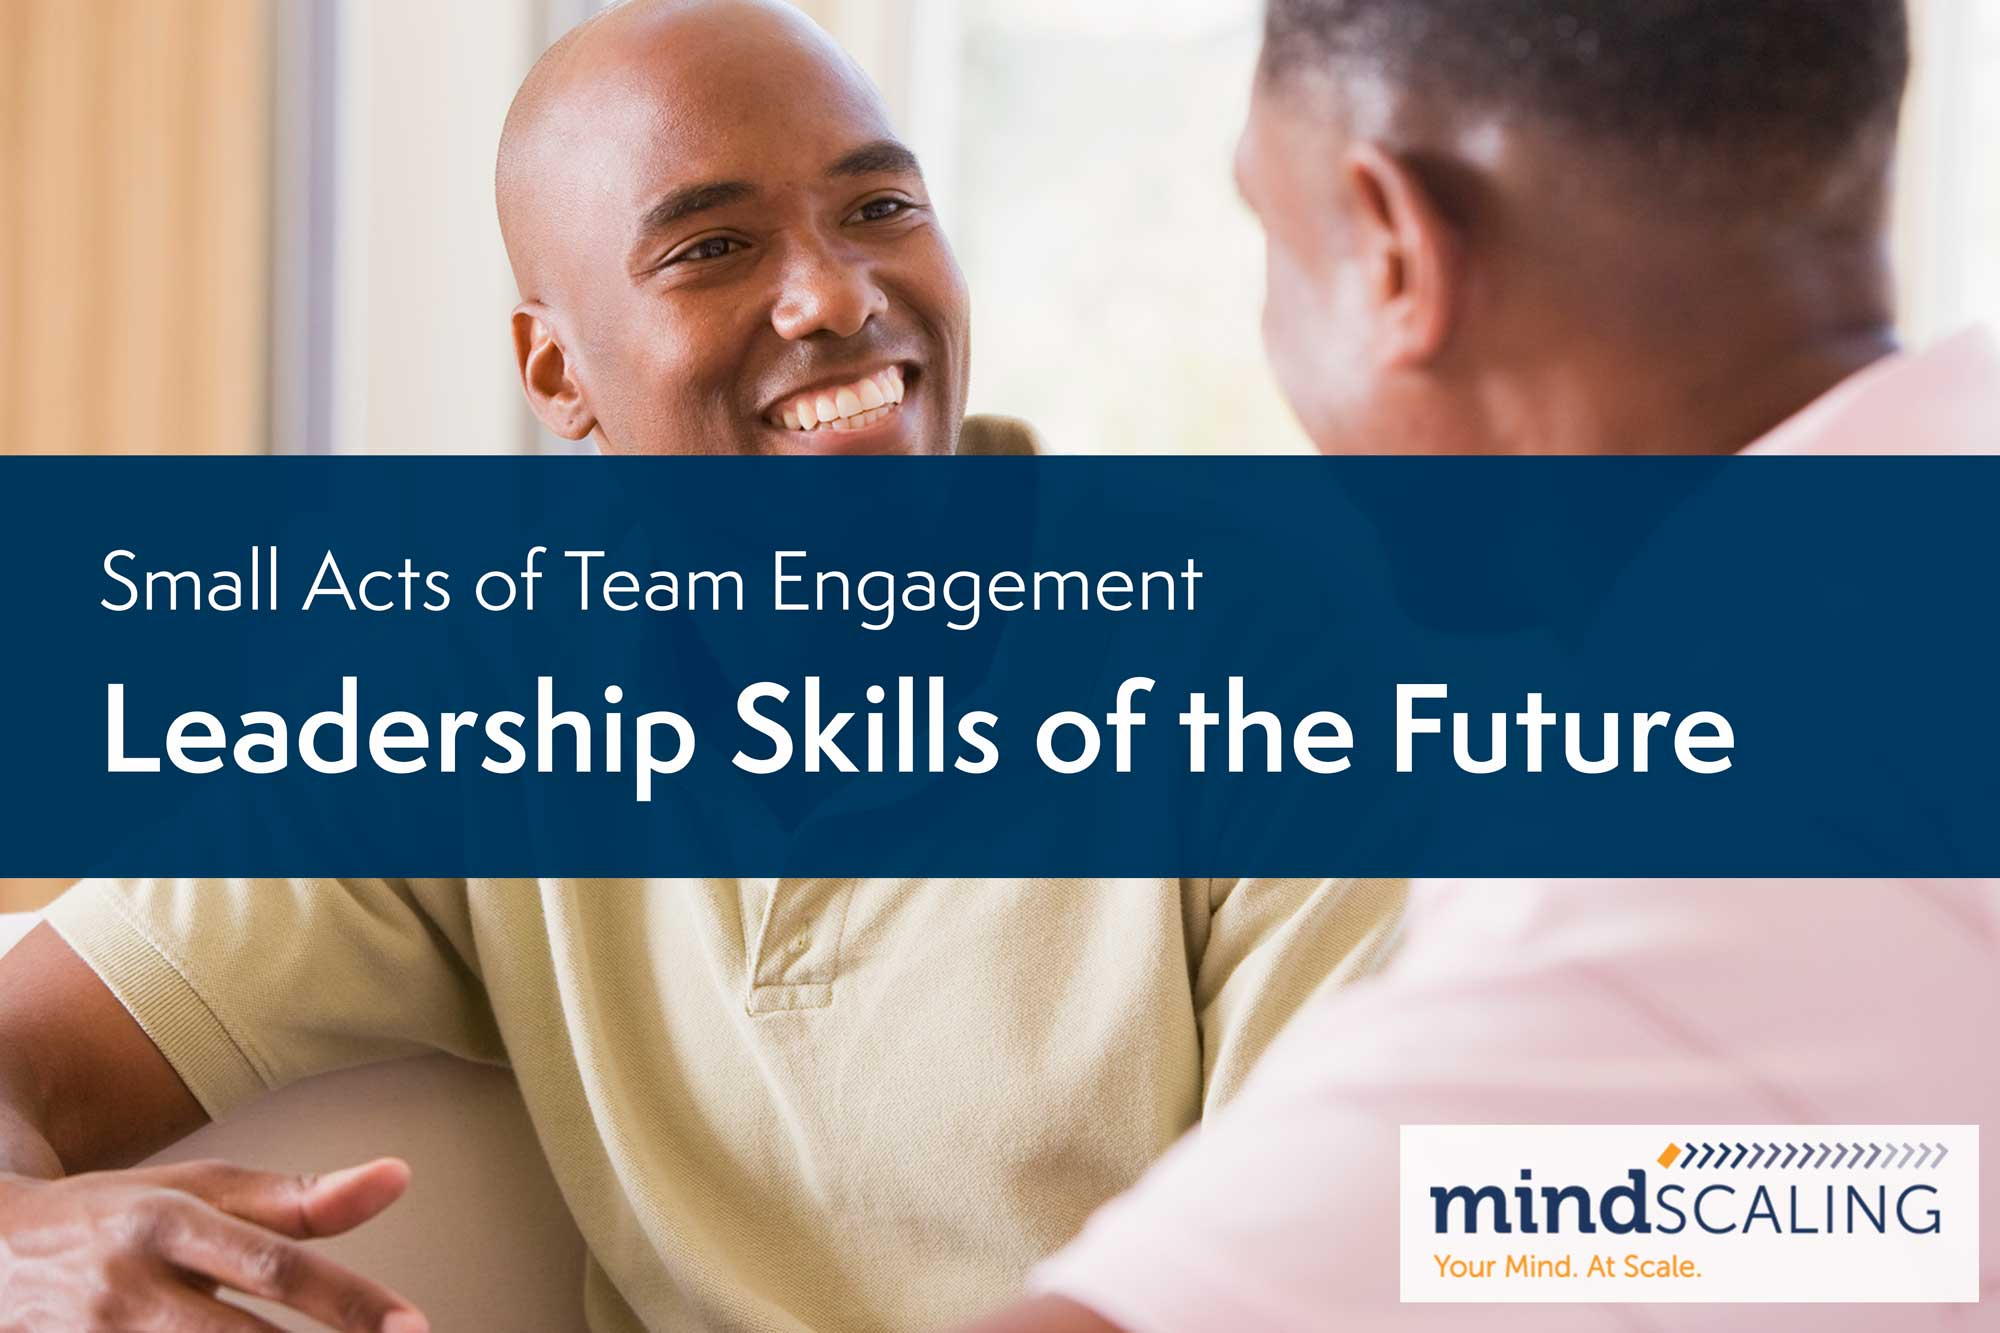 Small Acts of Team Engagement: Leadership Skills of the Future